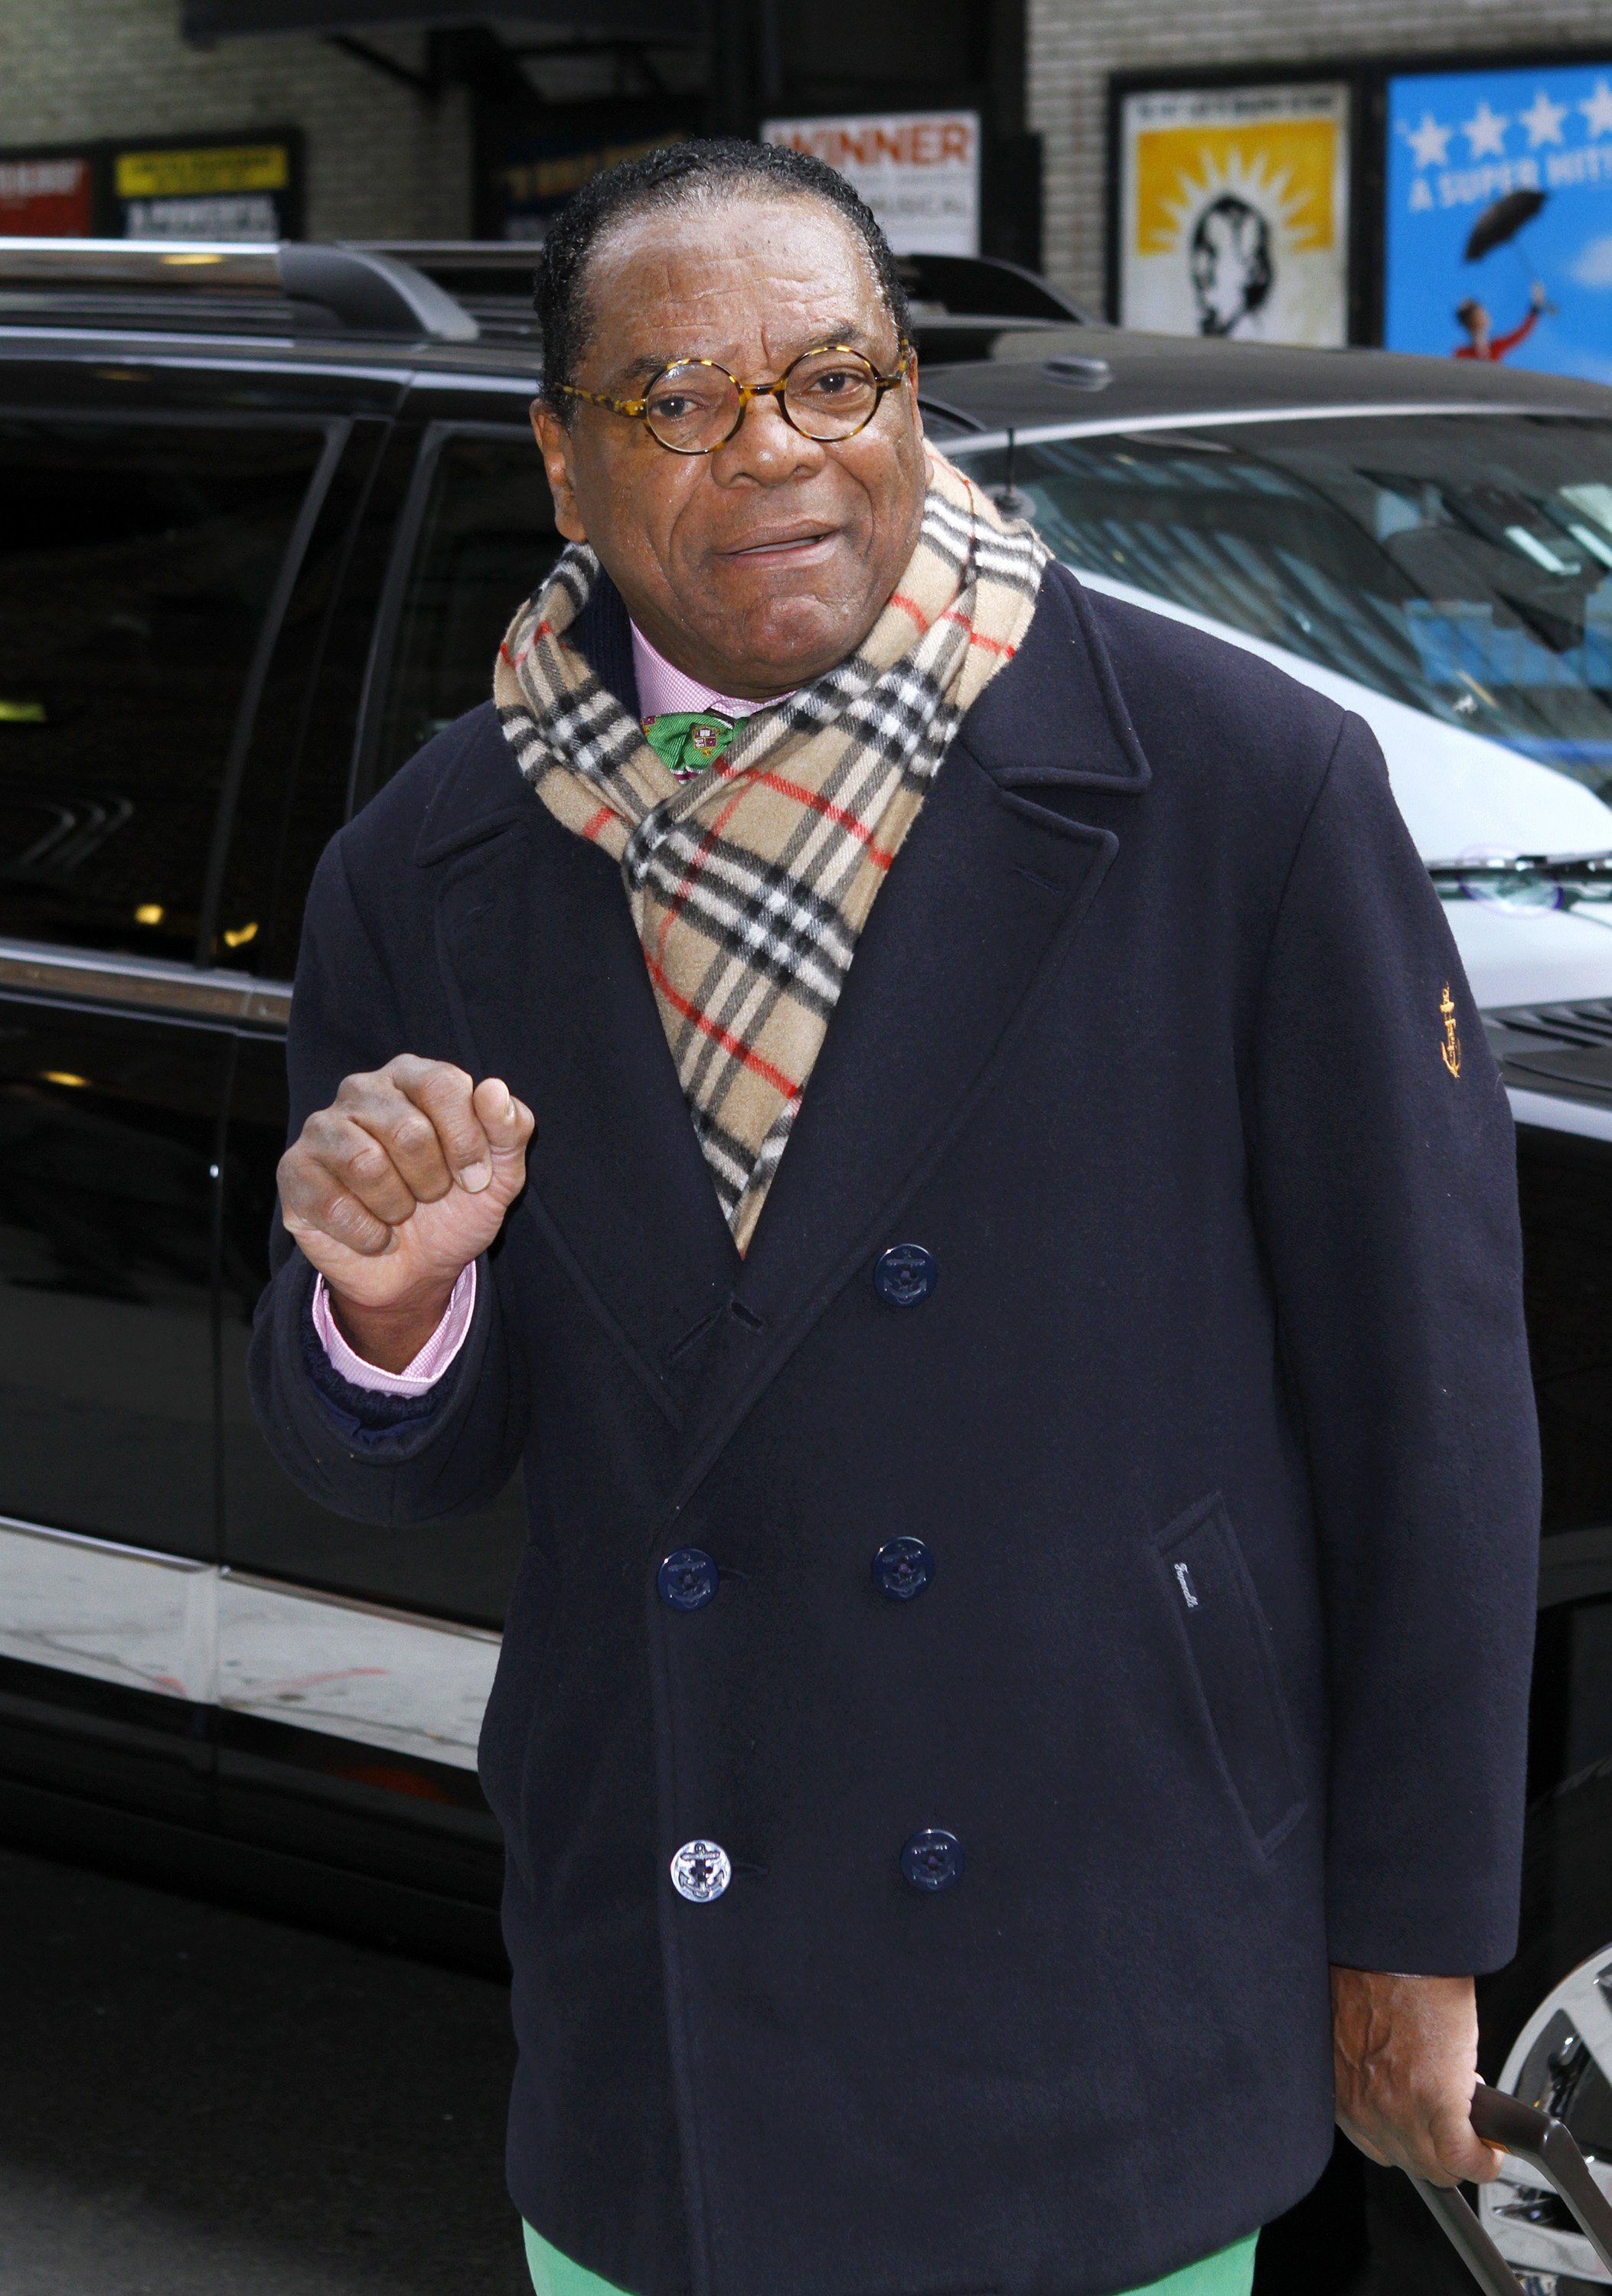 """John Witherspoon arrives for """"The Late Show with David Letterman"""" on Feb. 22, 2012 in New York City 